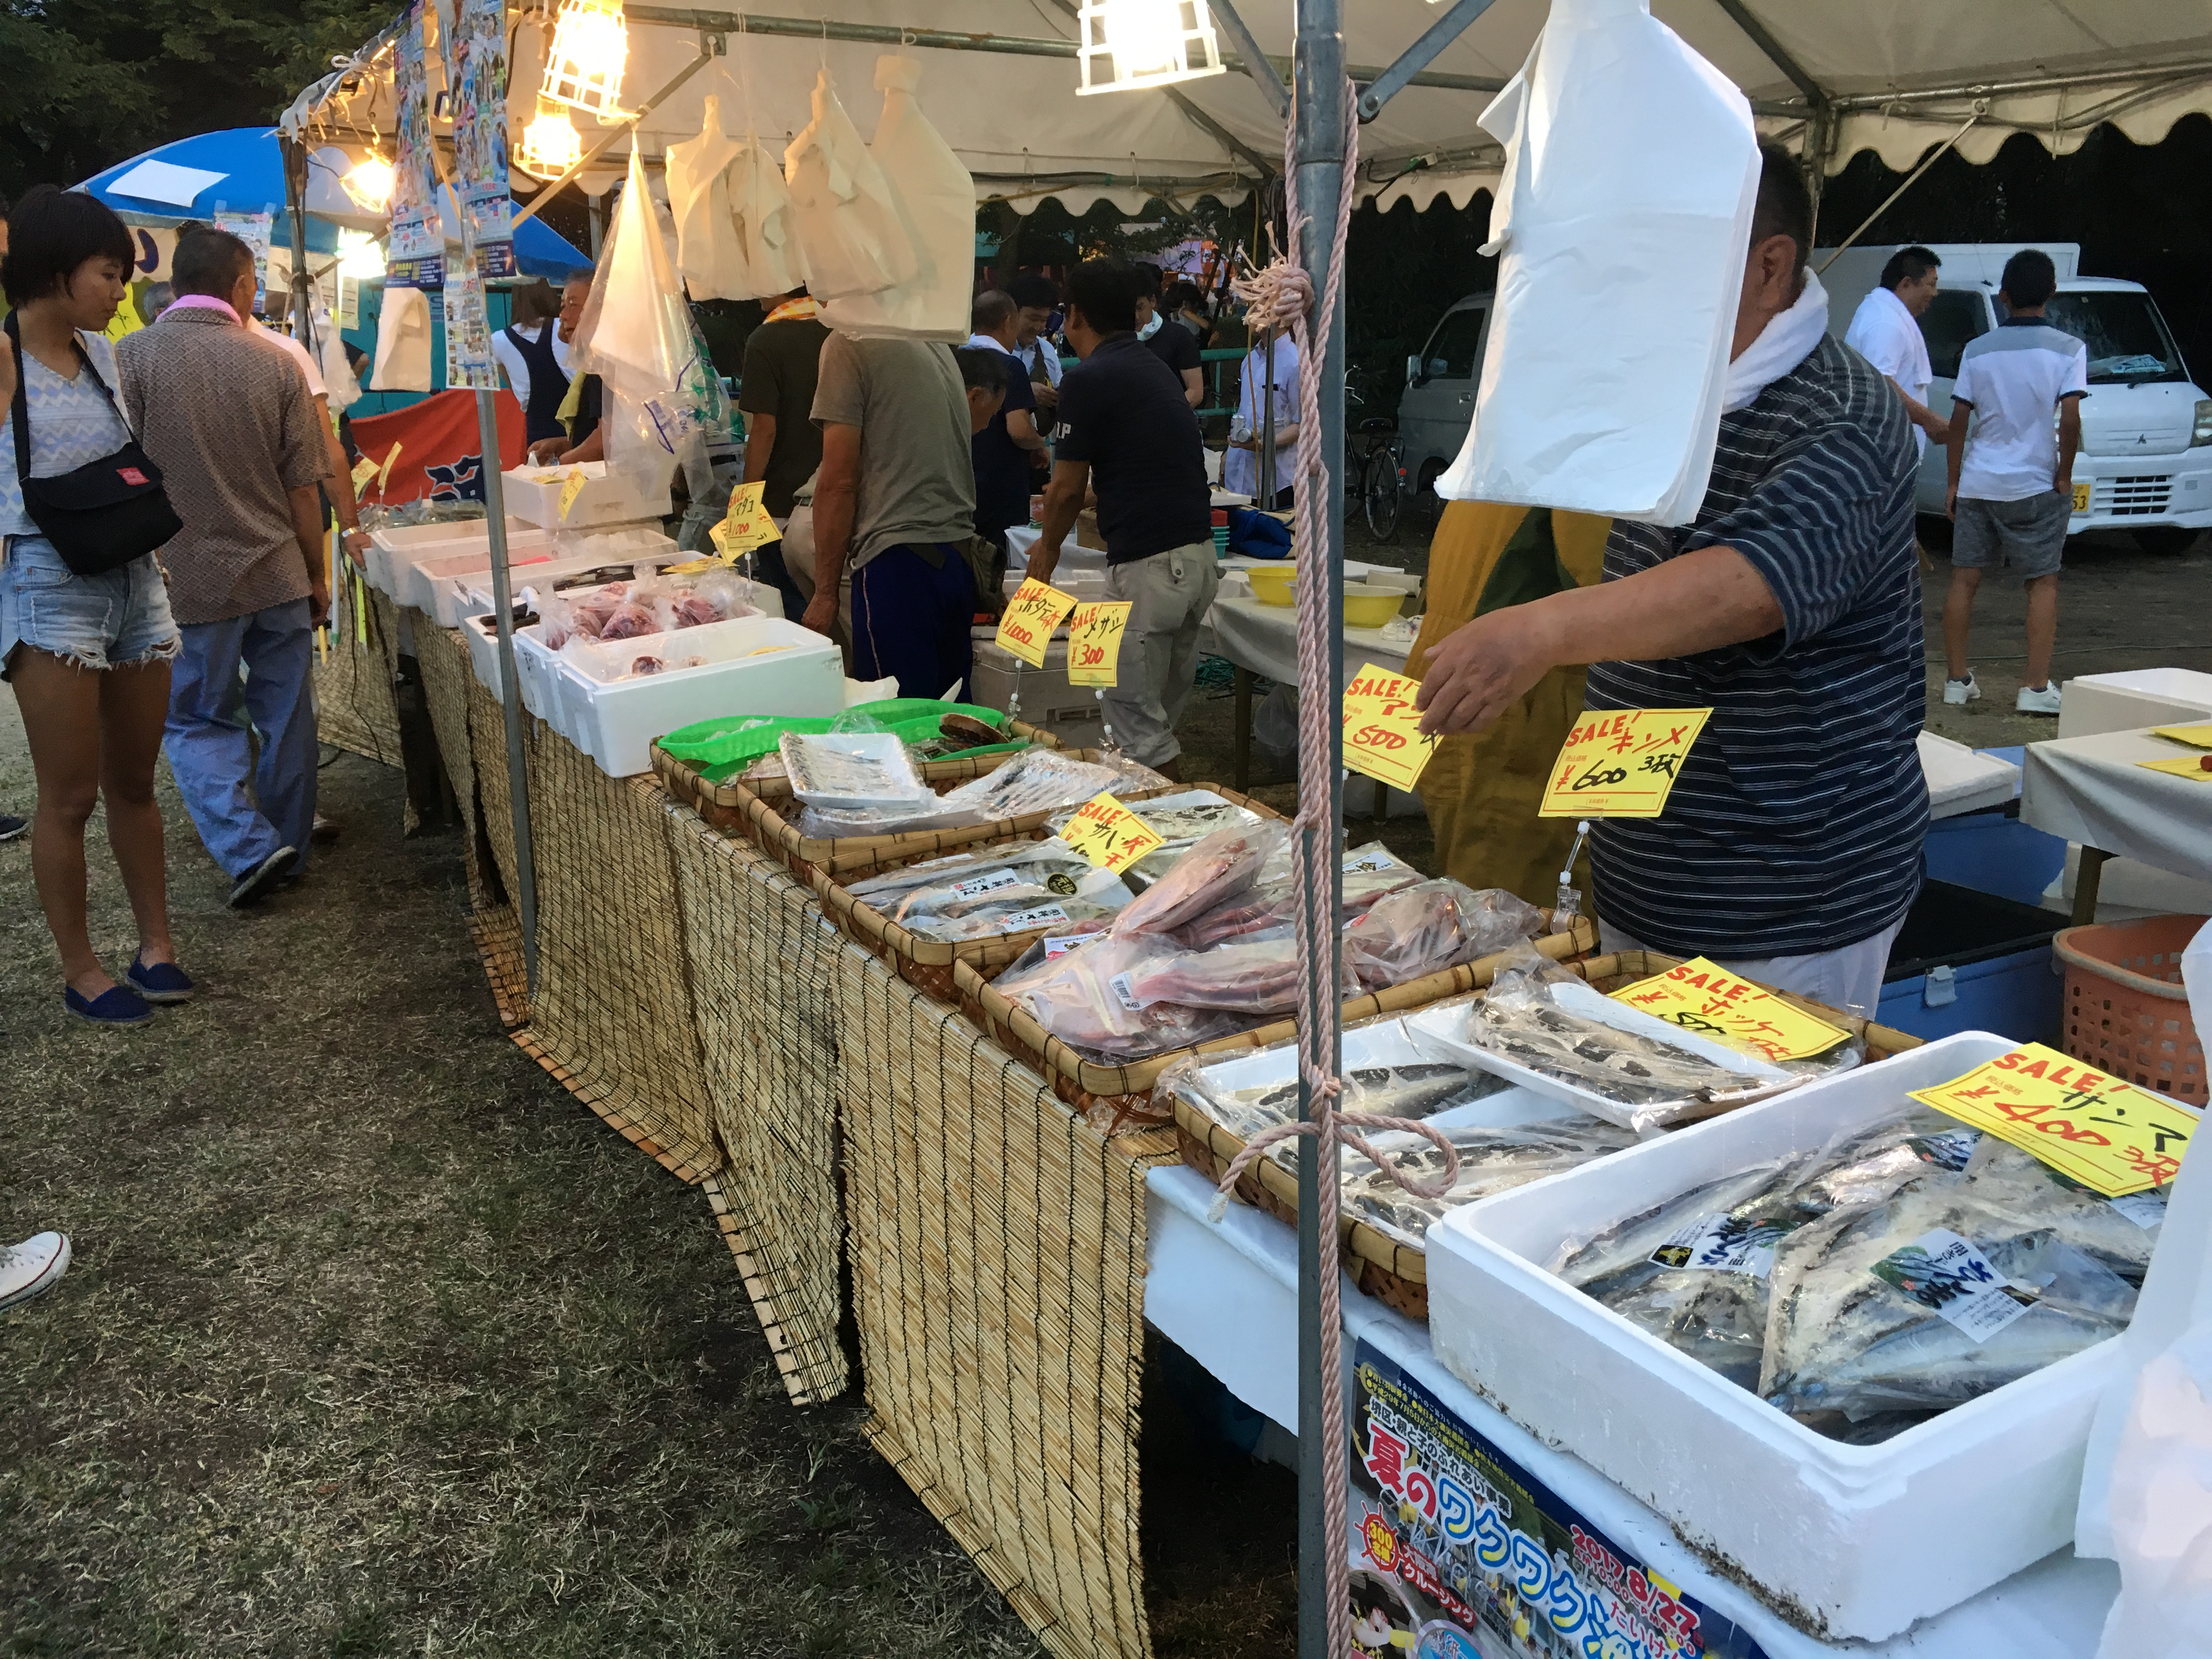 rows of fish on ice and straw mats under tents